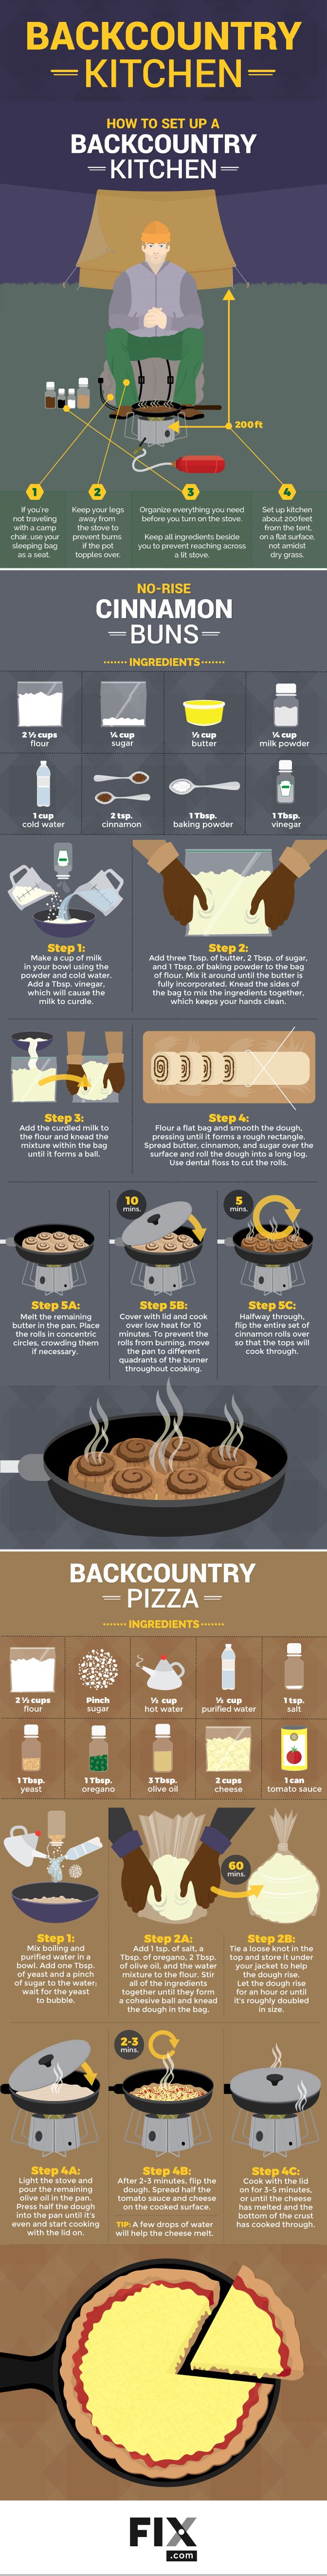 Backcountry Kitchen #Infographic #Kitchen #Food